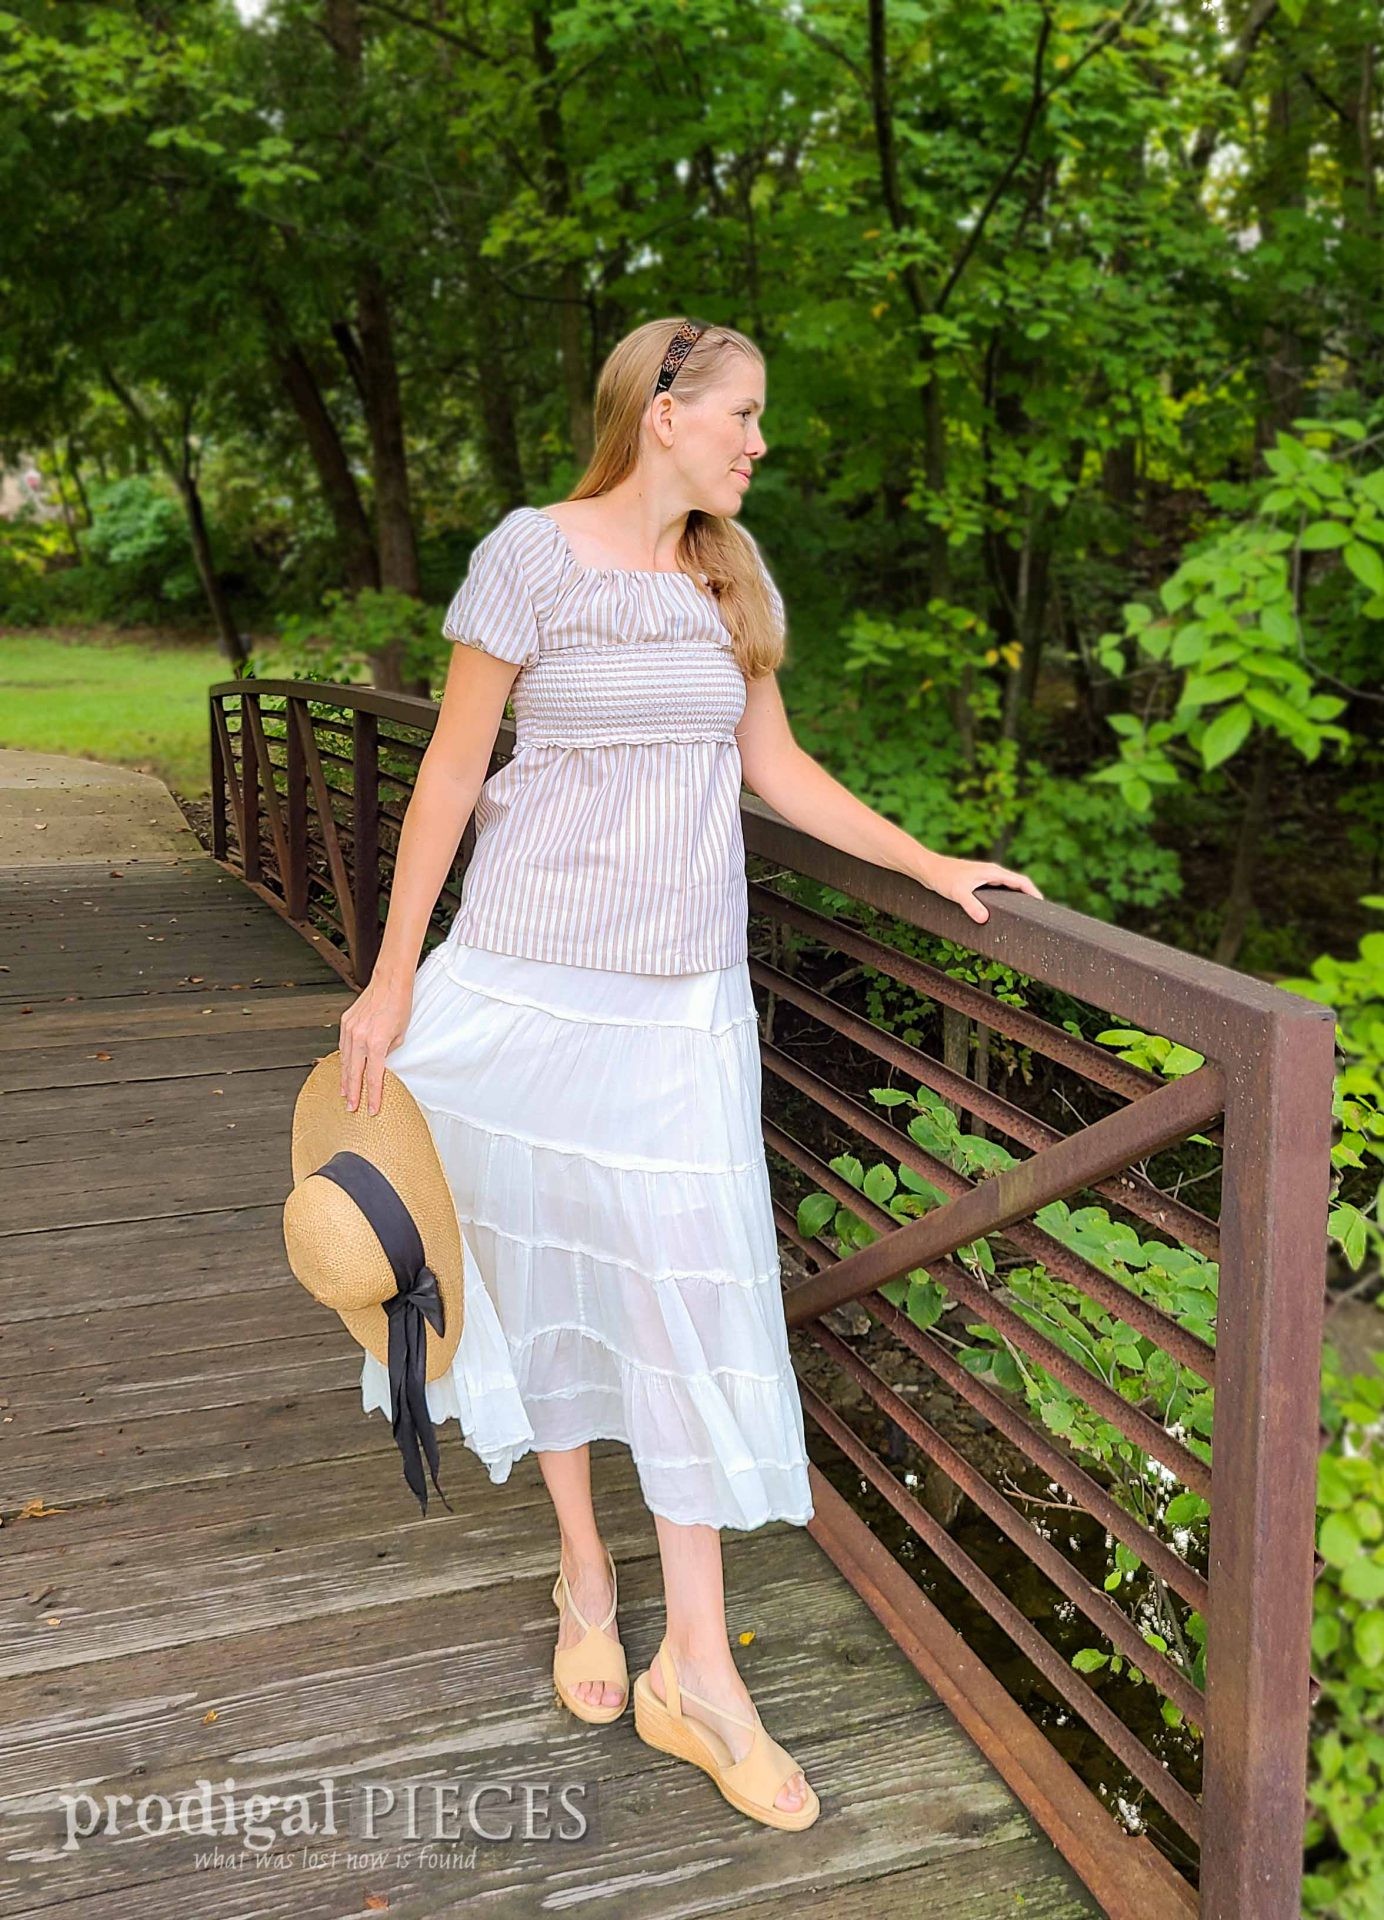 Larissa of Prodigal Pieces in Refashioned Ladies' Smocked Blouse | prodigalpieces.com #prodigalpieces #refashion #upcycle #fashion #clothing